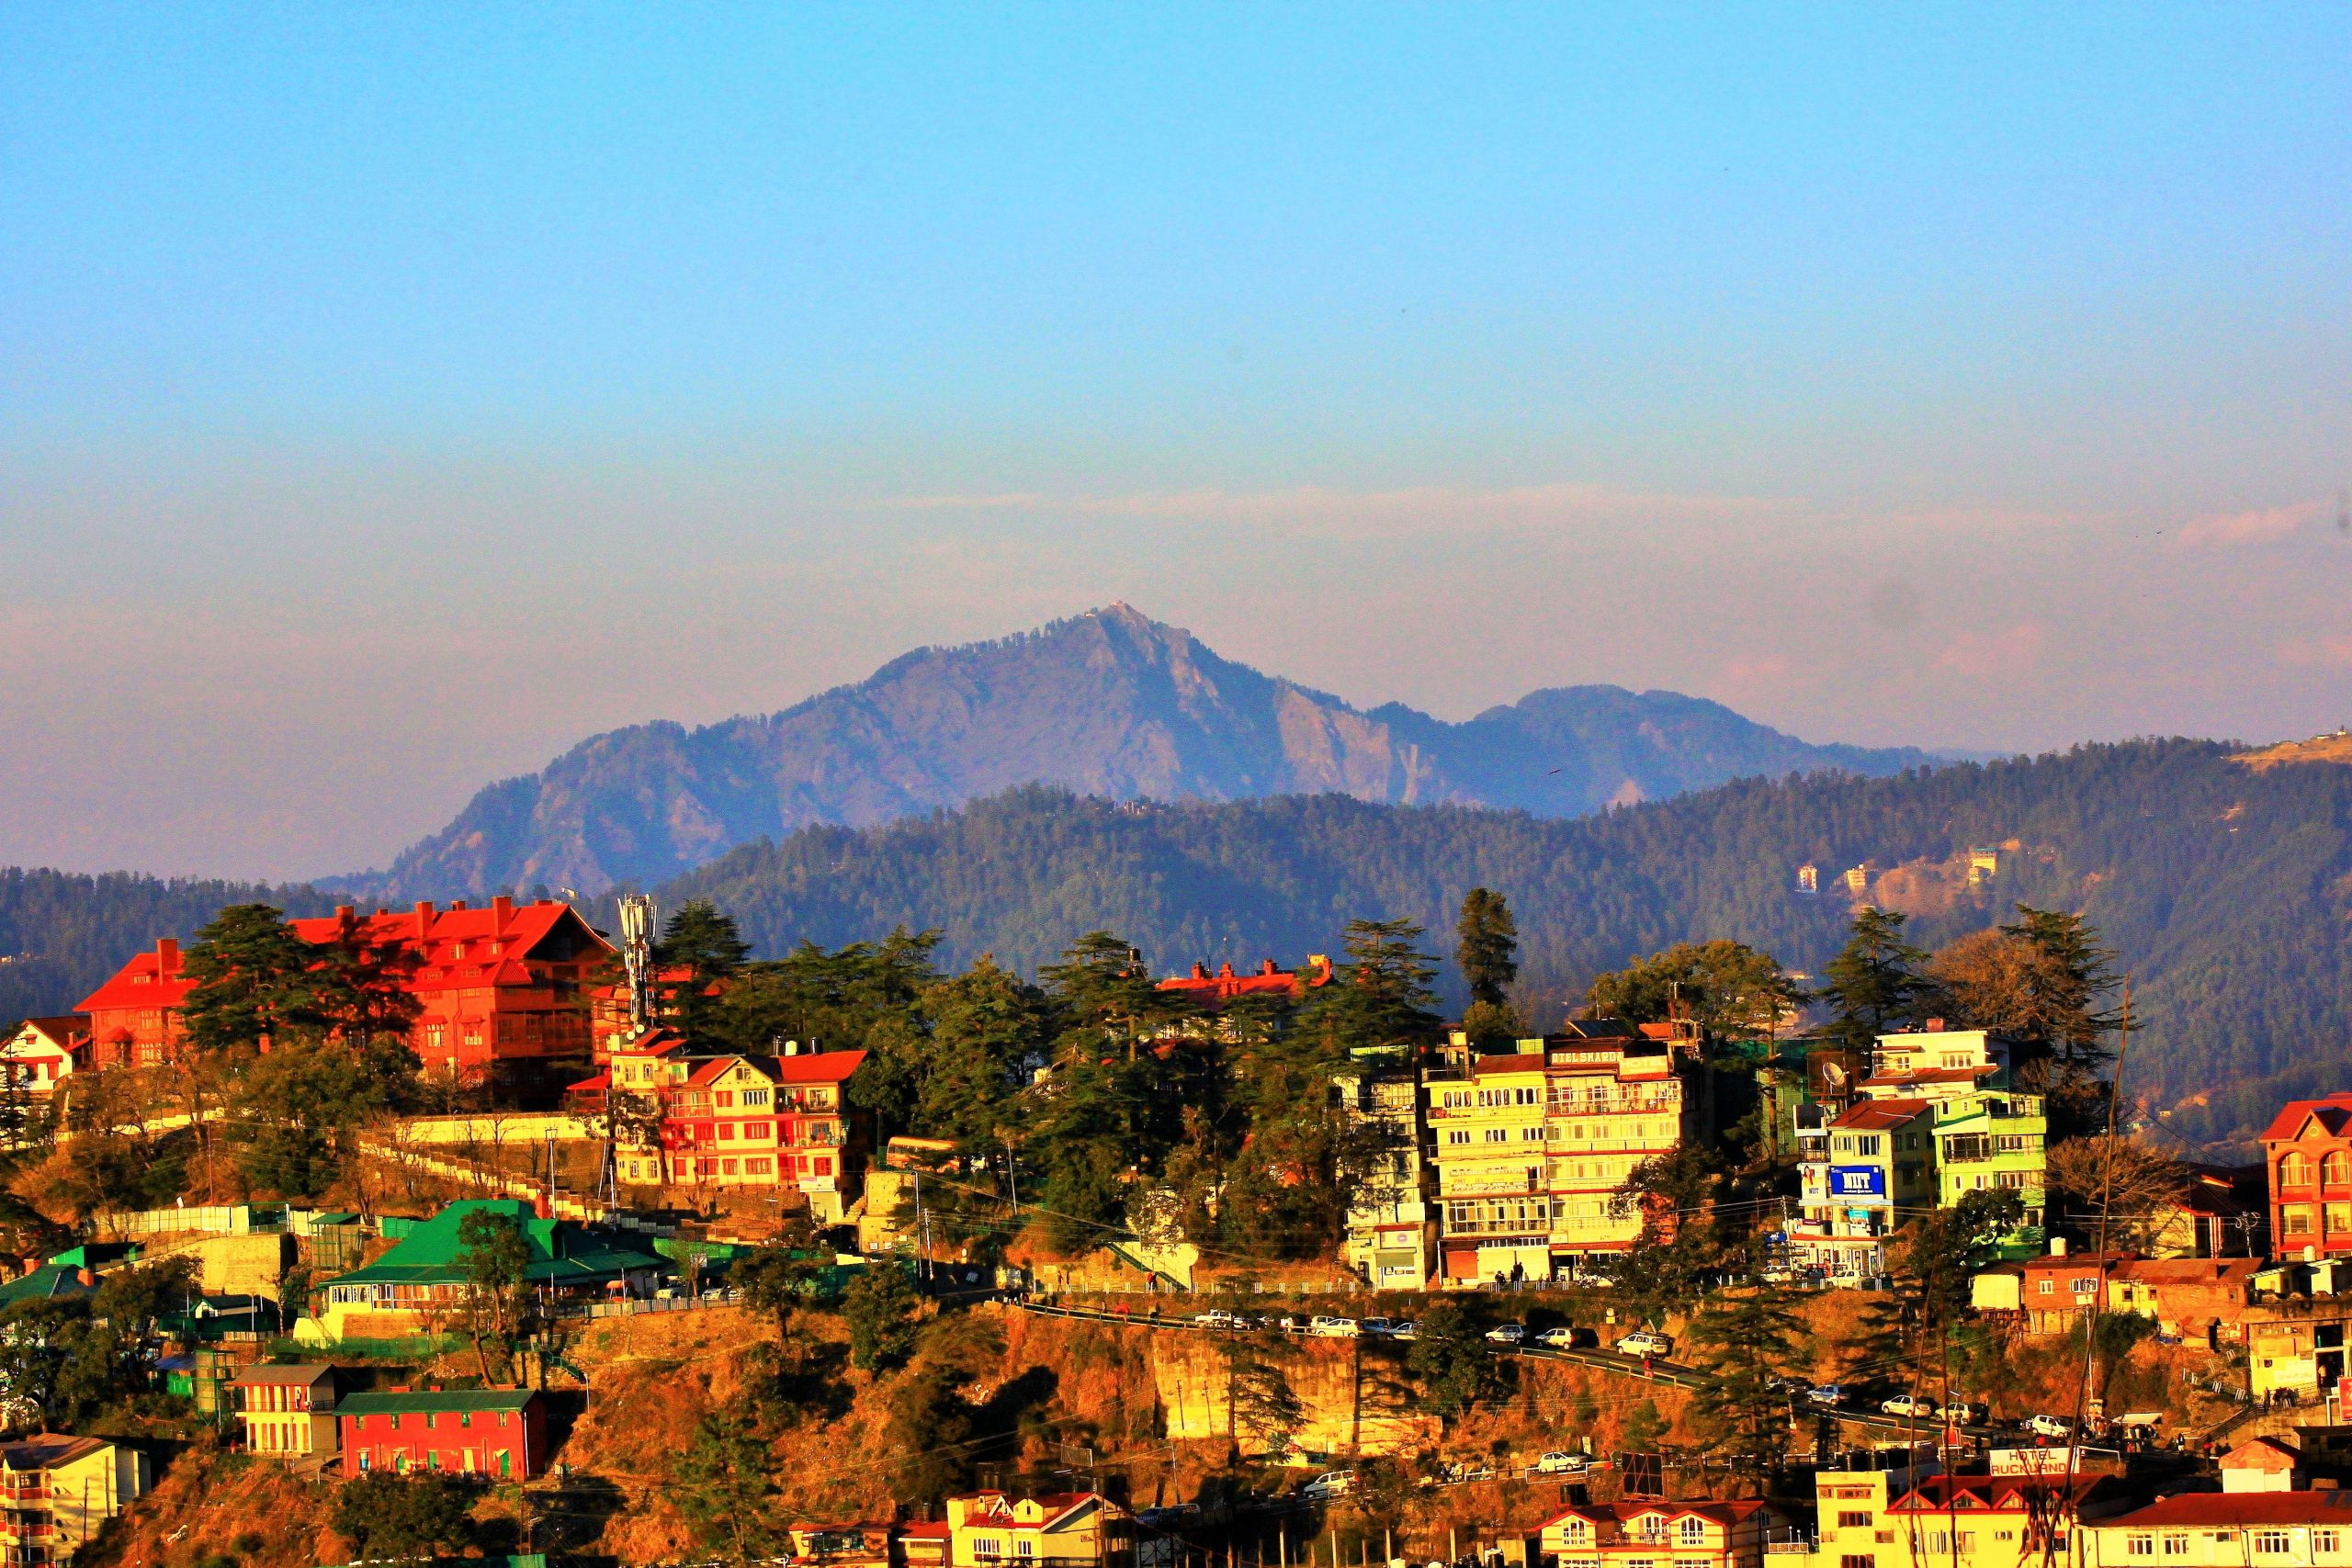 A hill town in Shimla